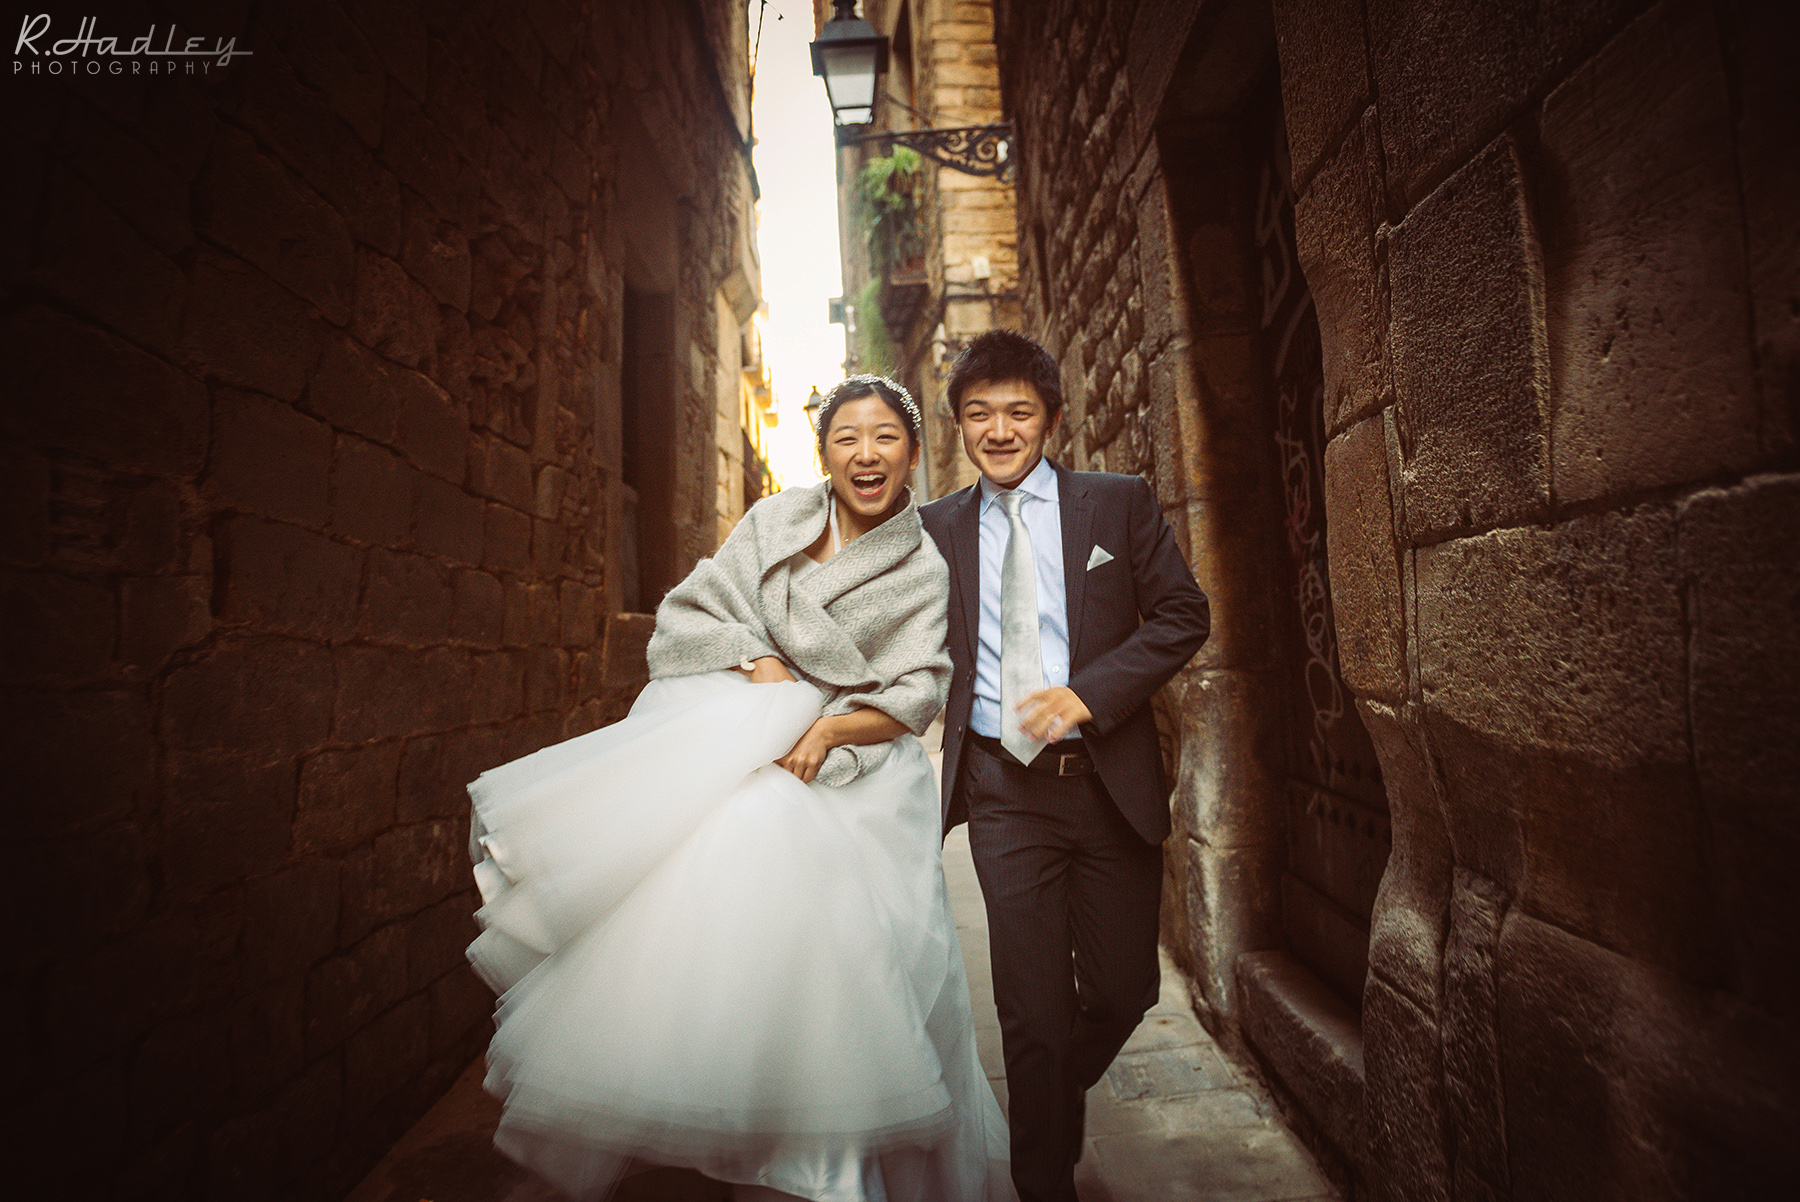 Wedding engagement photographer in Barcelona